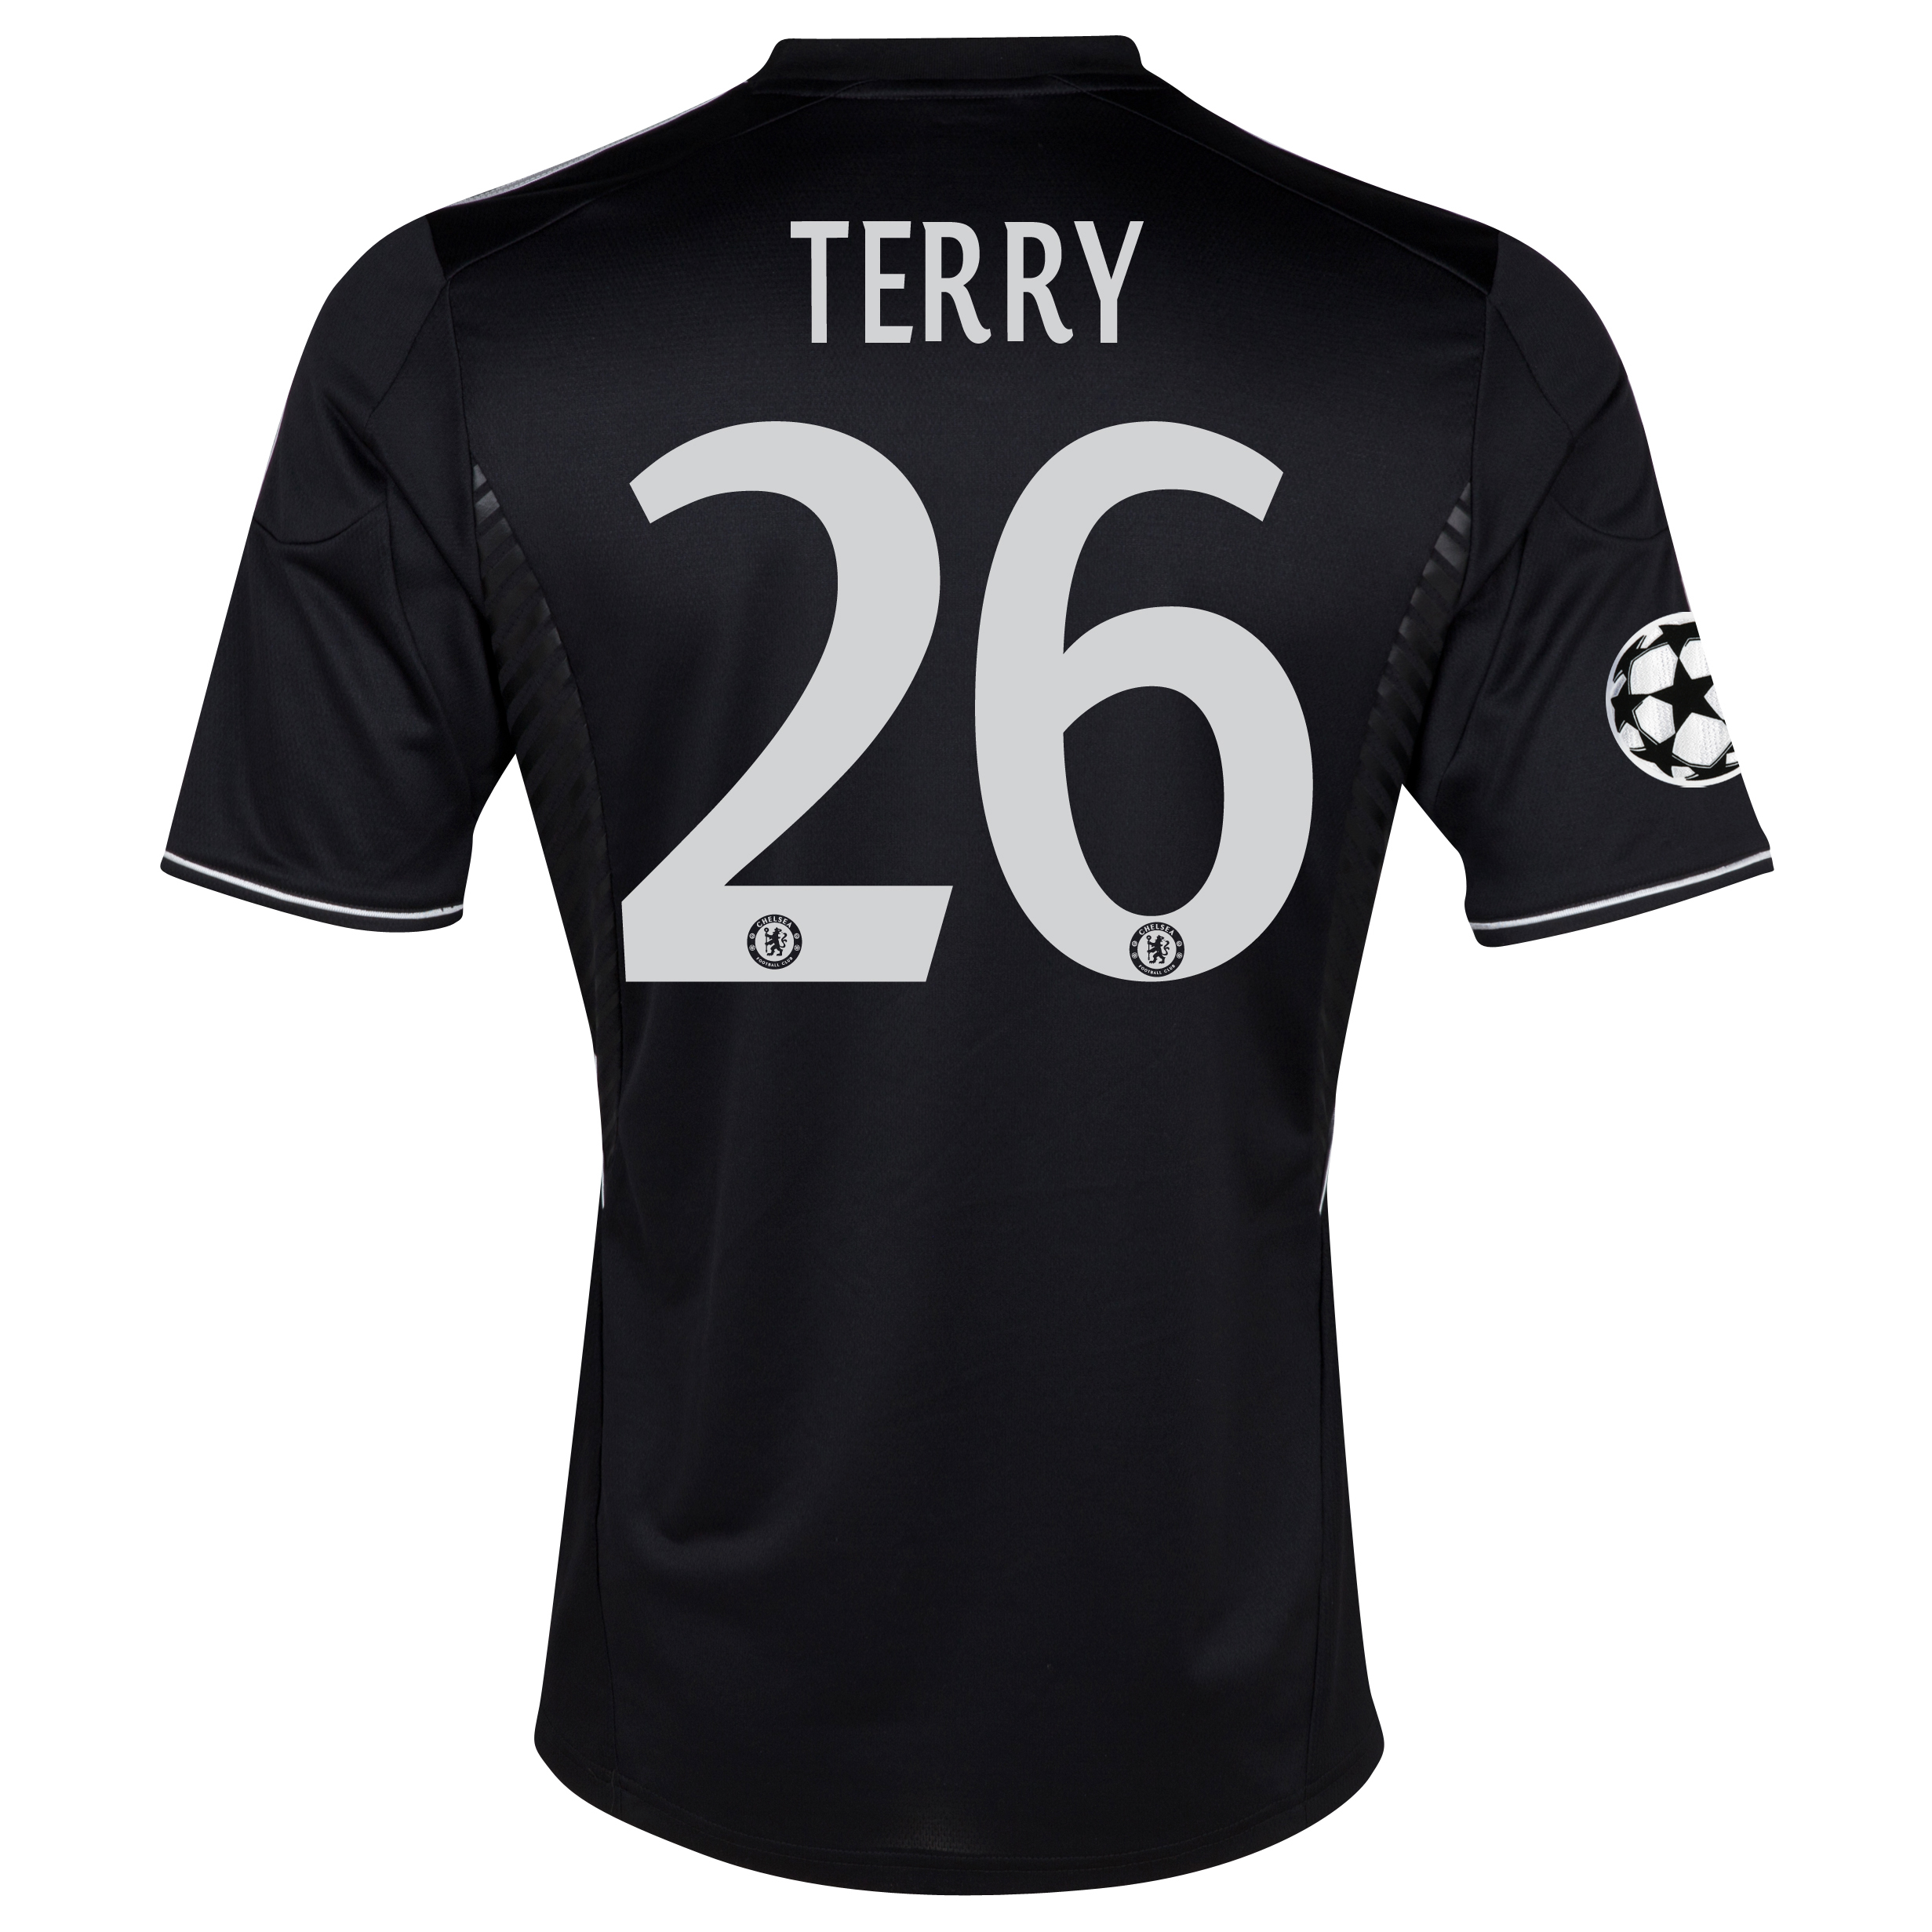 Chelsea UEFA Champions League Third Shirt 2013/14 - Kids with Terry 26 printing